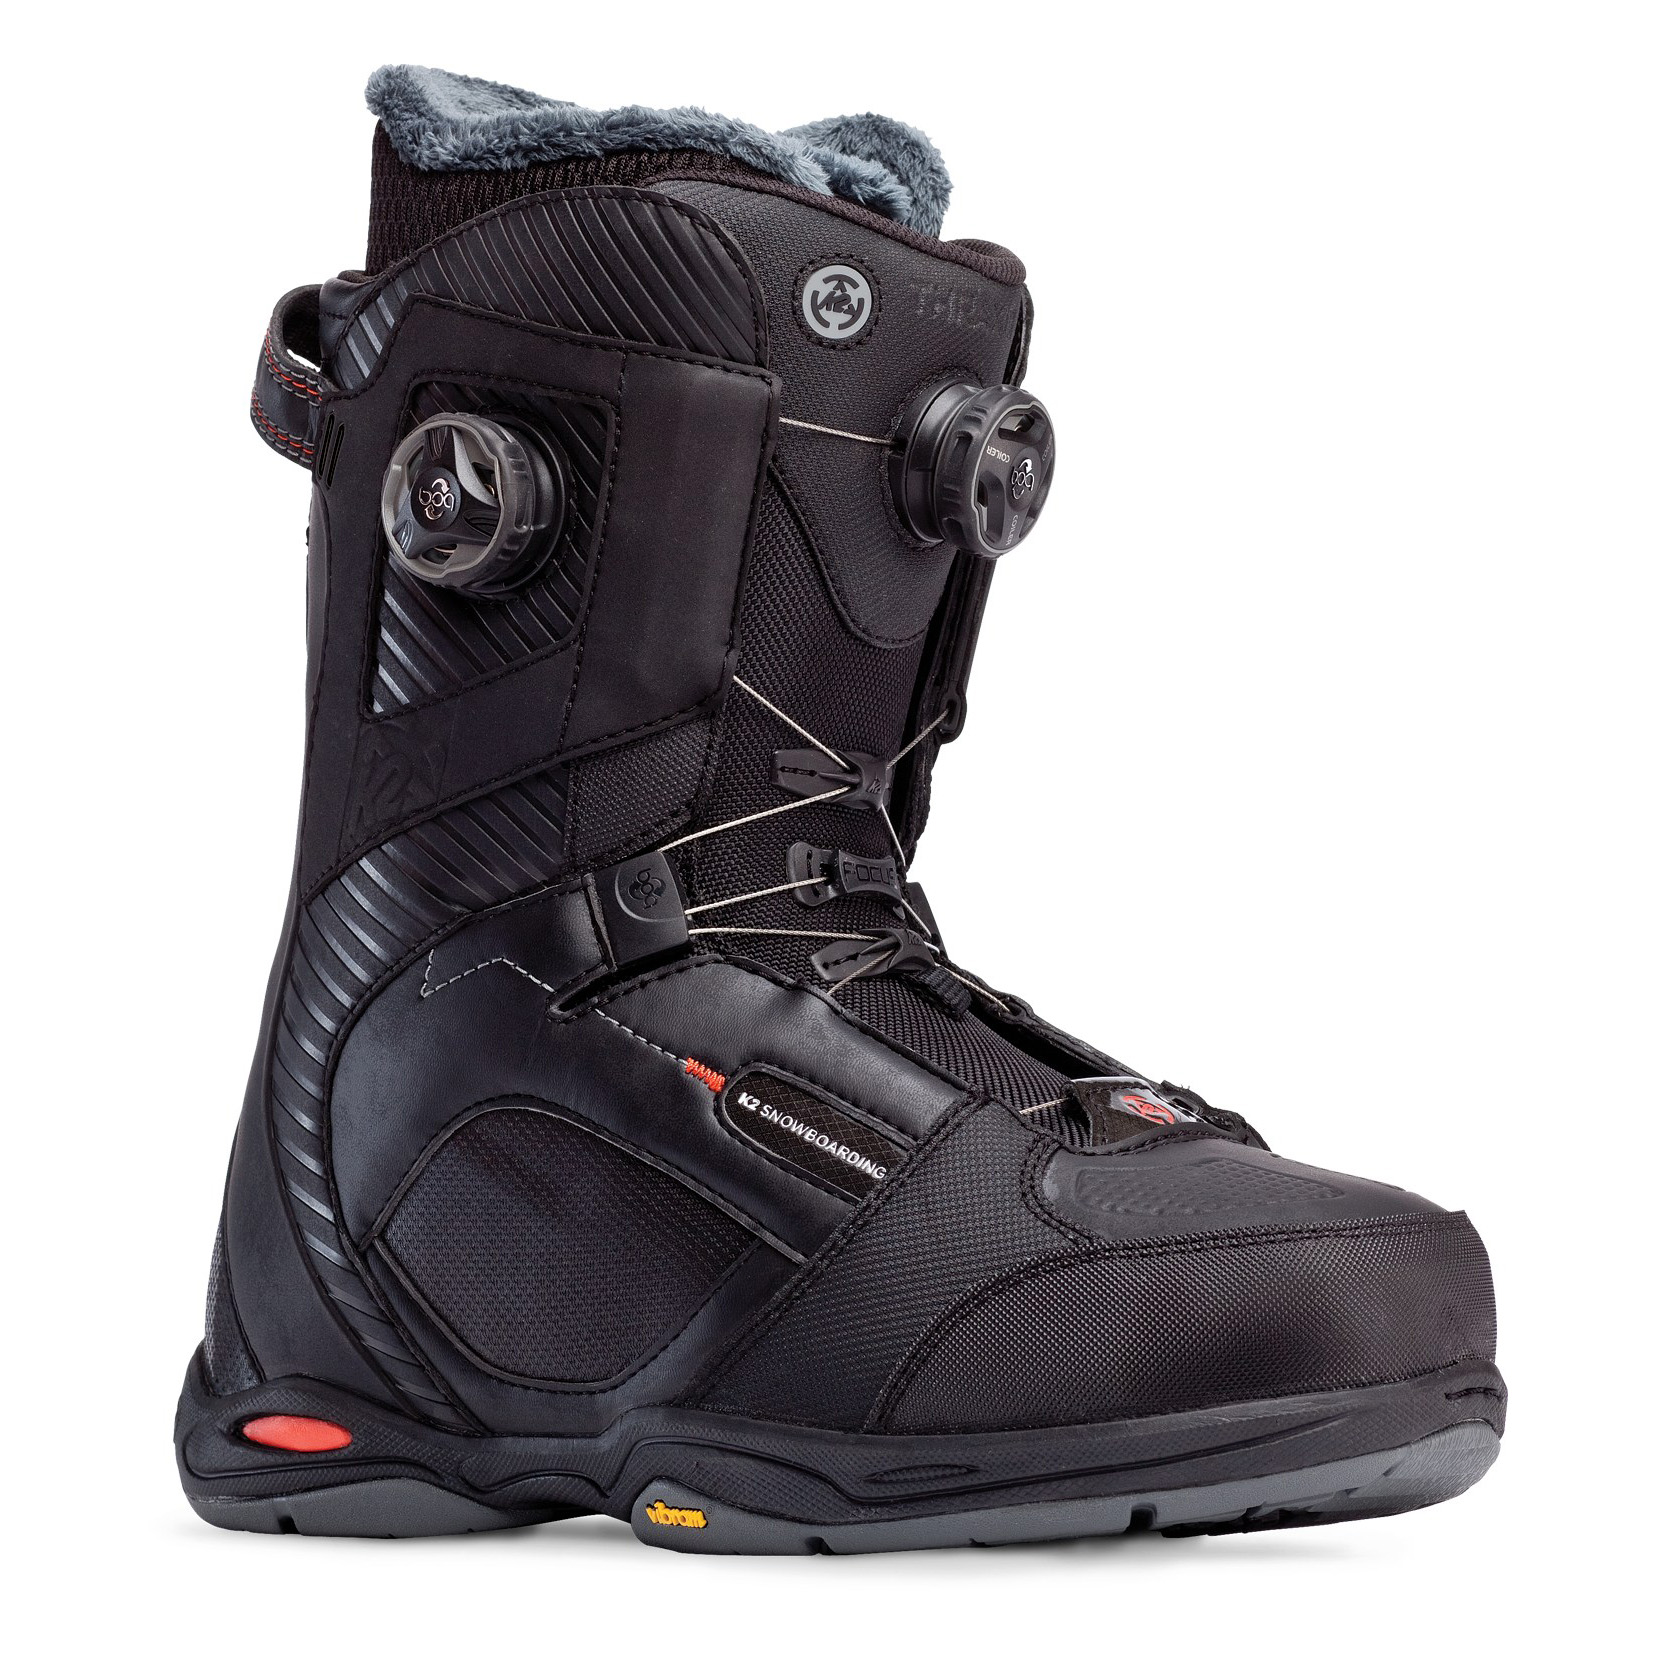 k2-thraxis-snowboard-boots-front copy.jpg